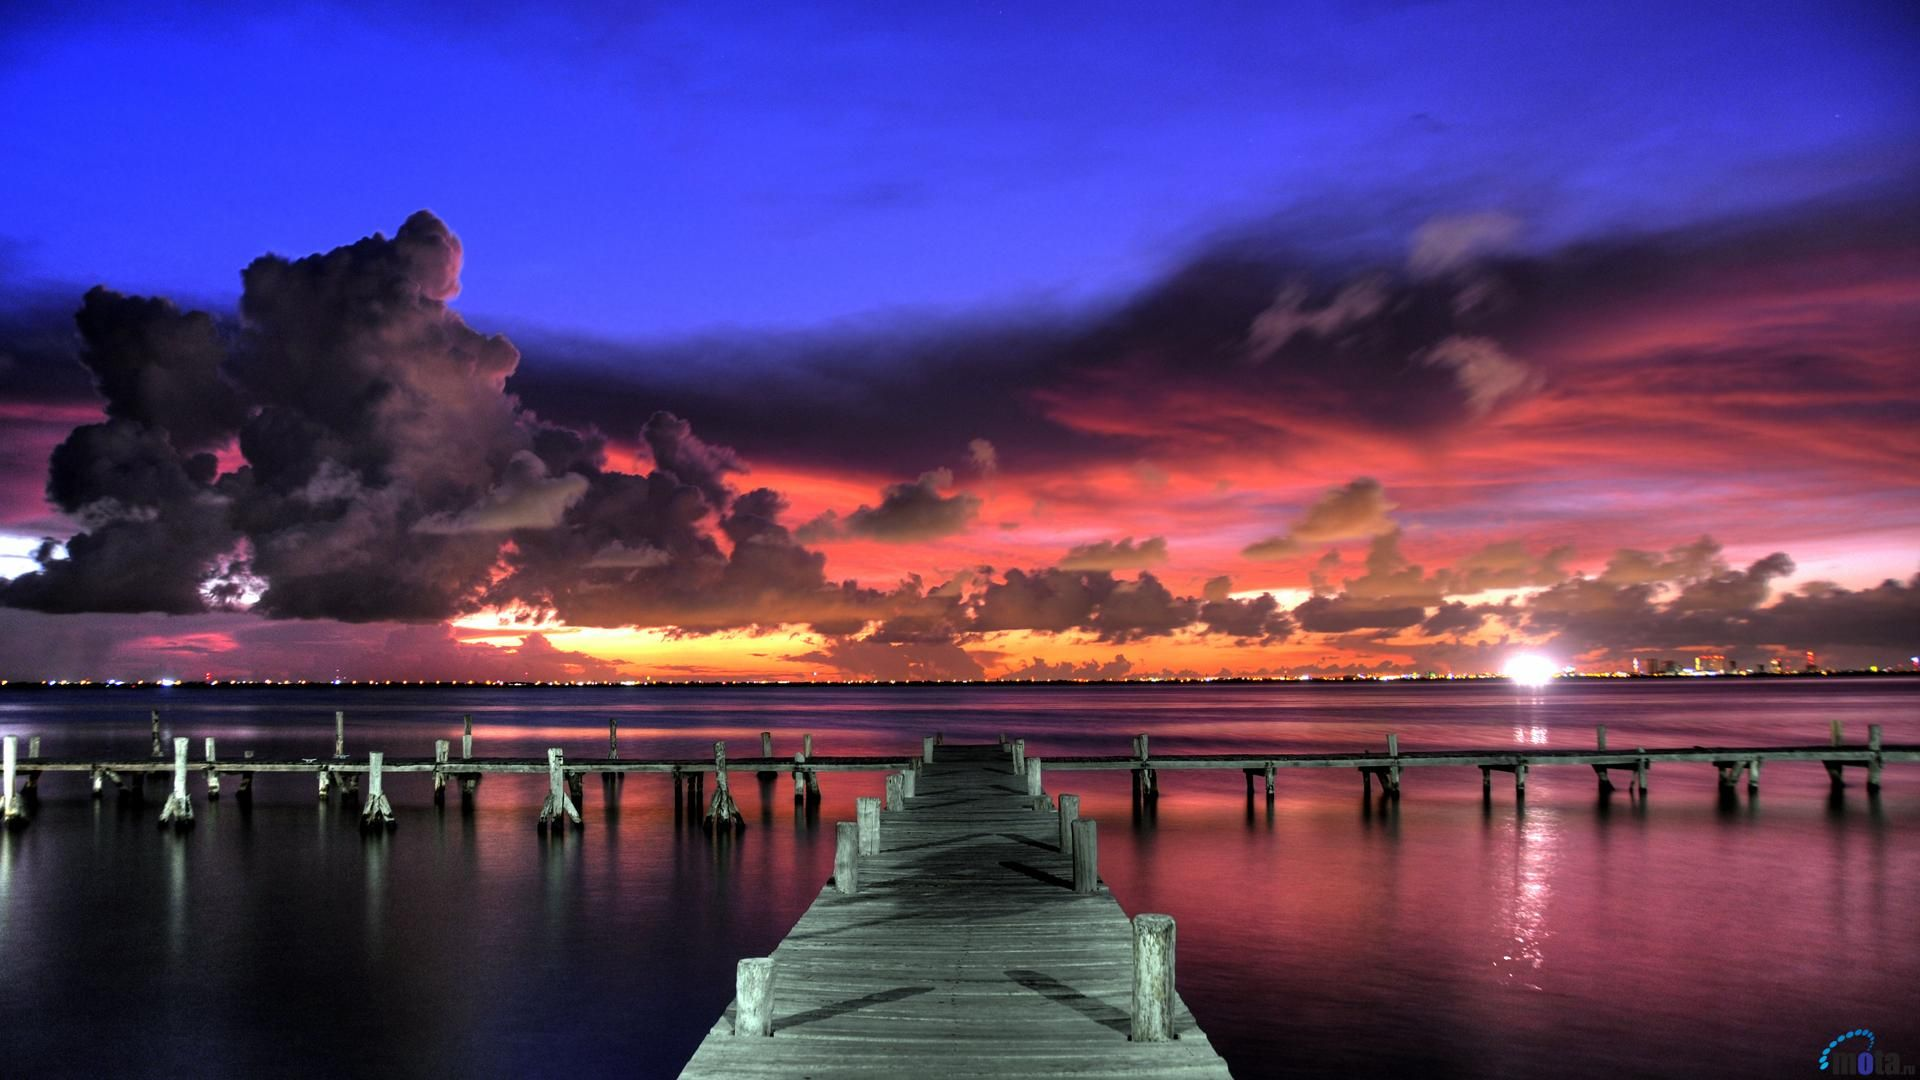 Beautiful Tropical Sunset Wallpaper Free Desktop Backgrounds And 1600x1200 Wallpapers 37